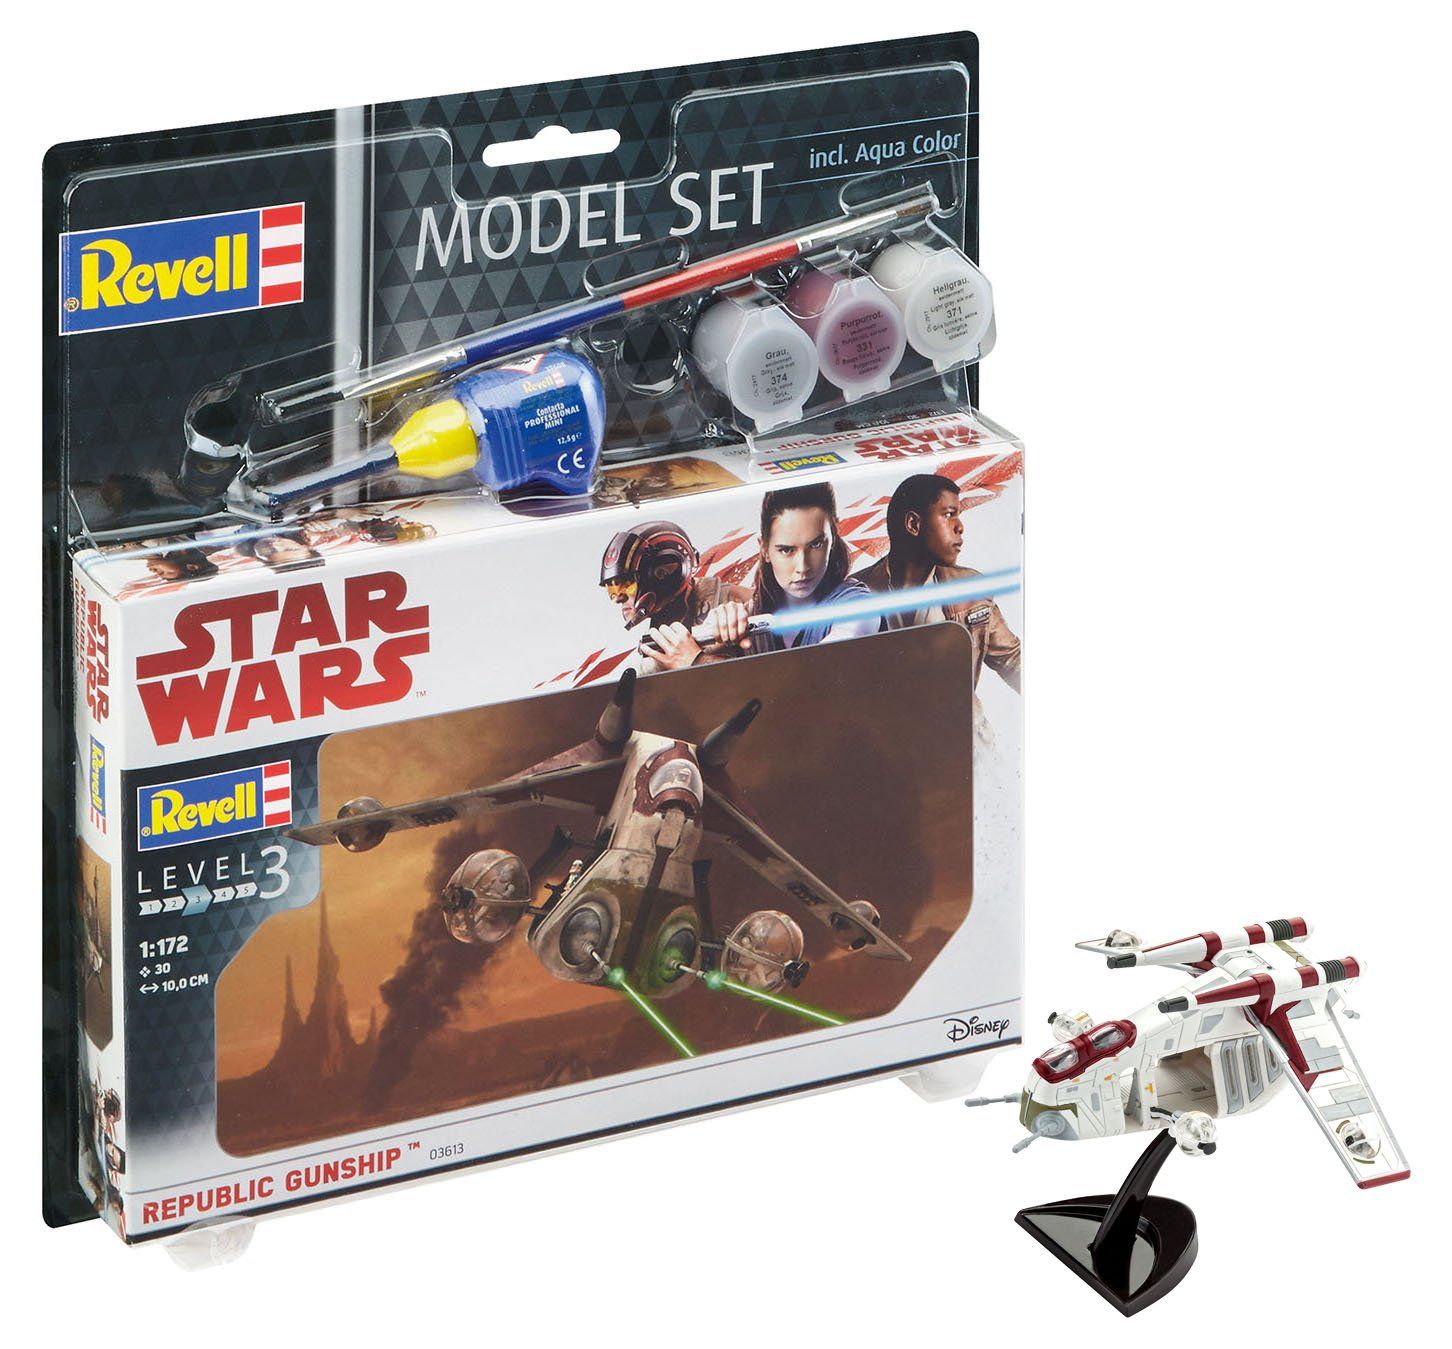 63613 – Star Wars Republic Gunship Model Set, with paints, glue and paintbrush